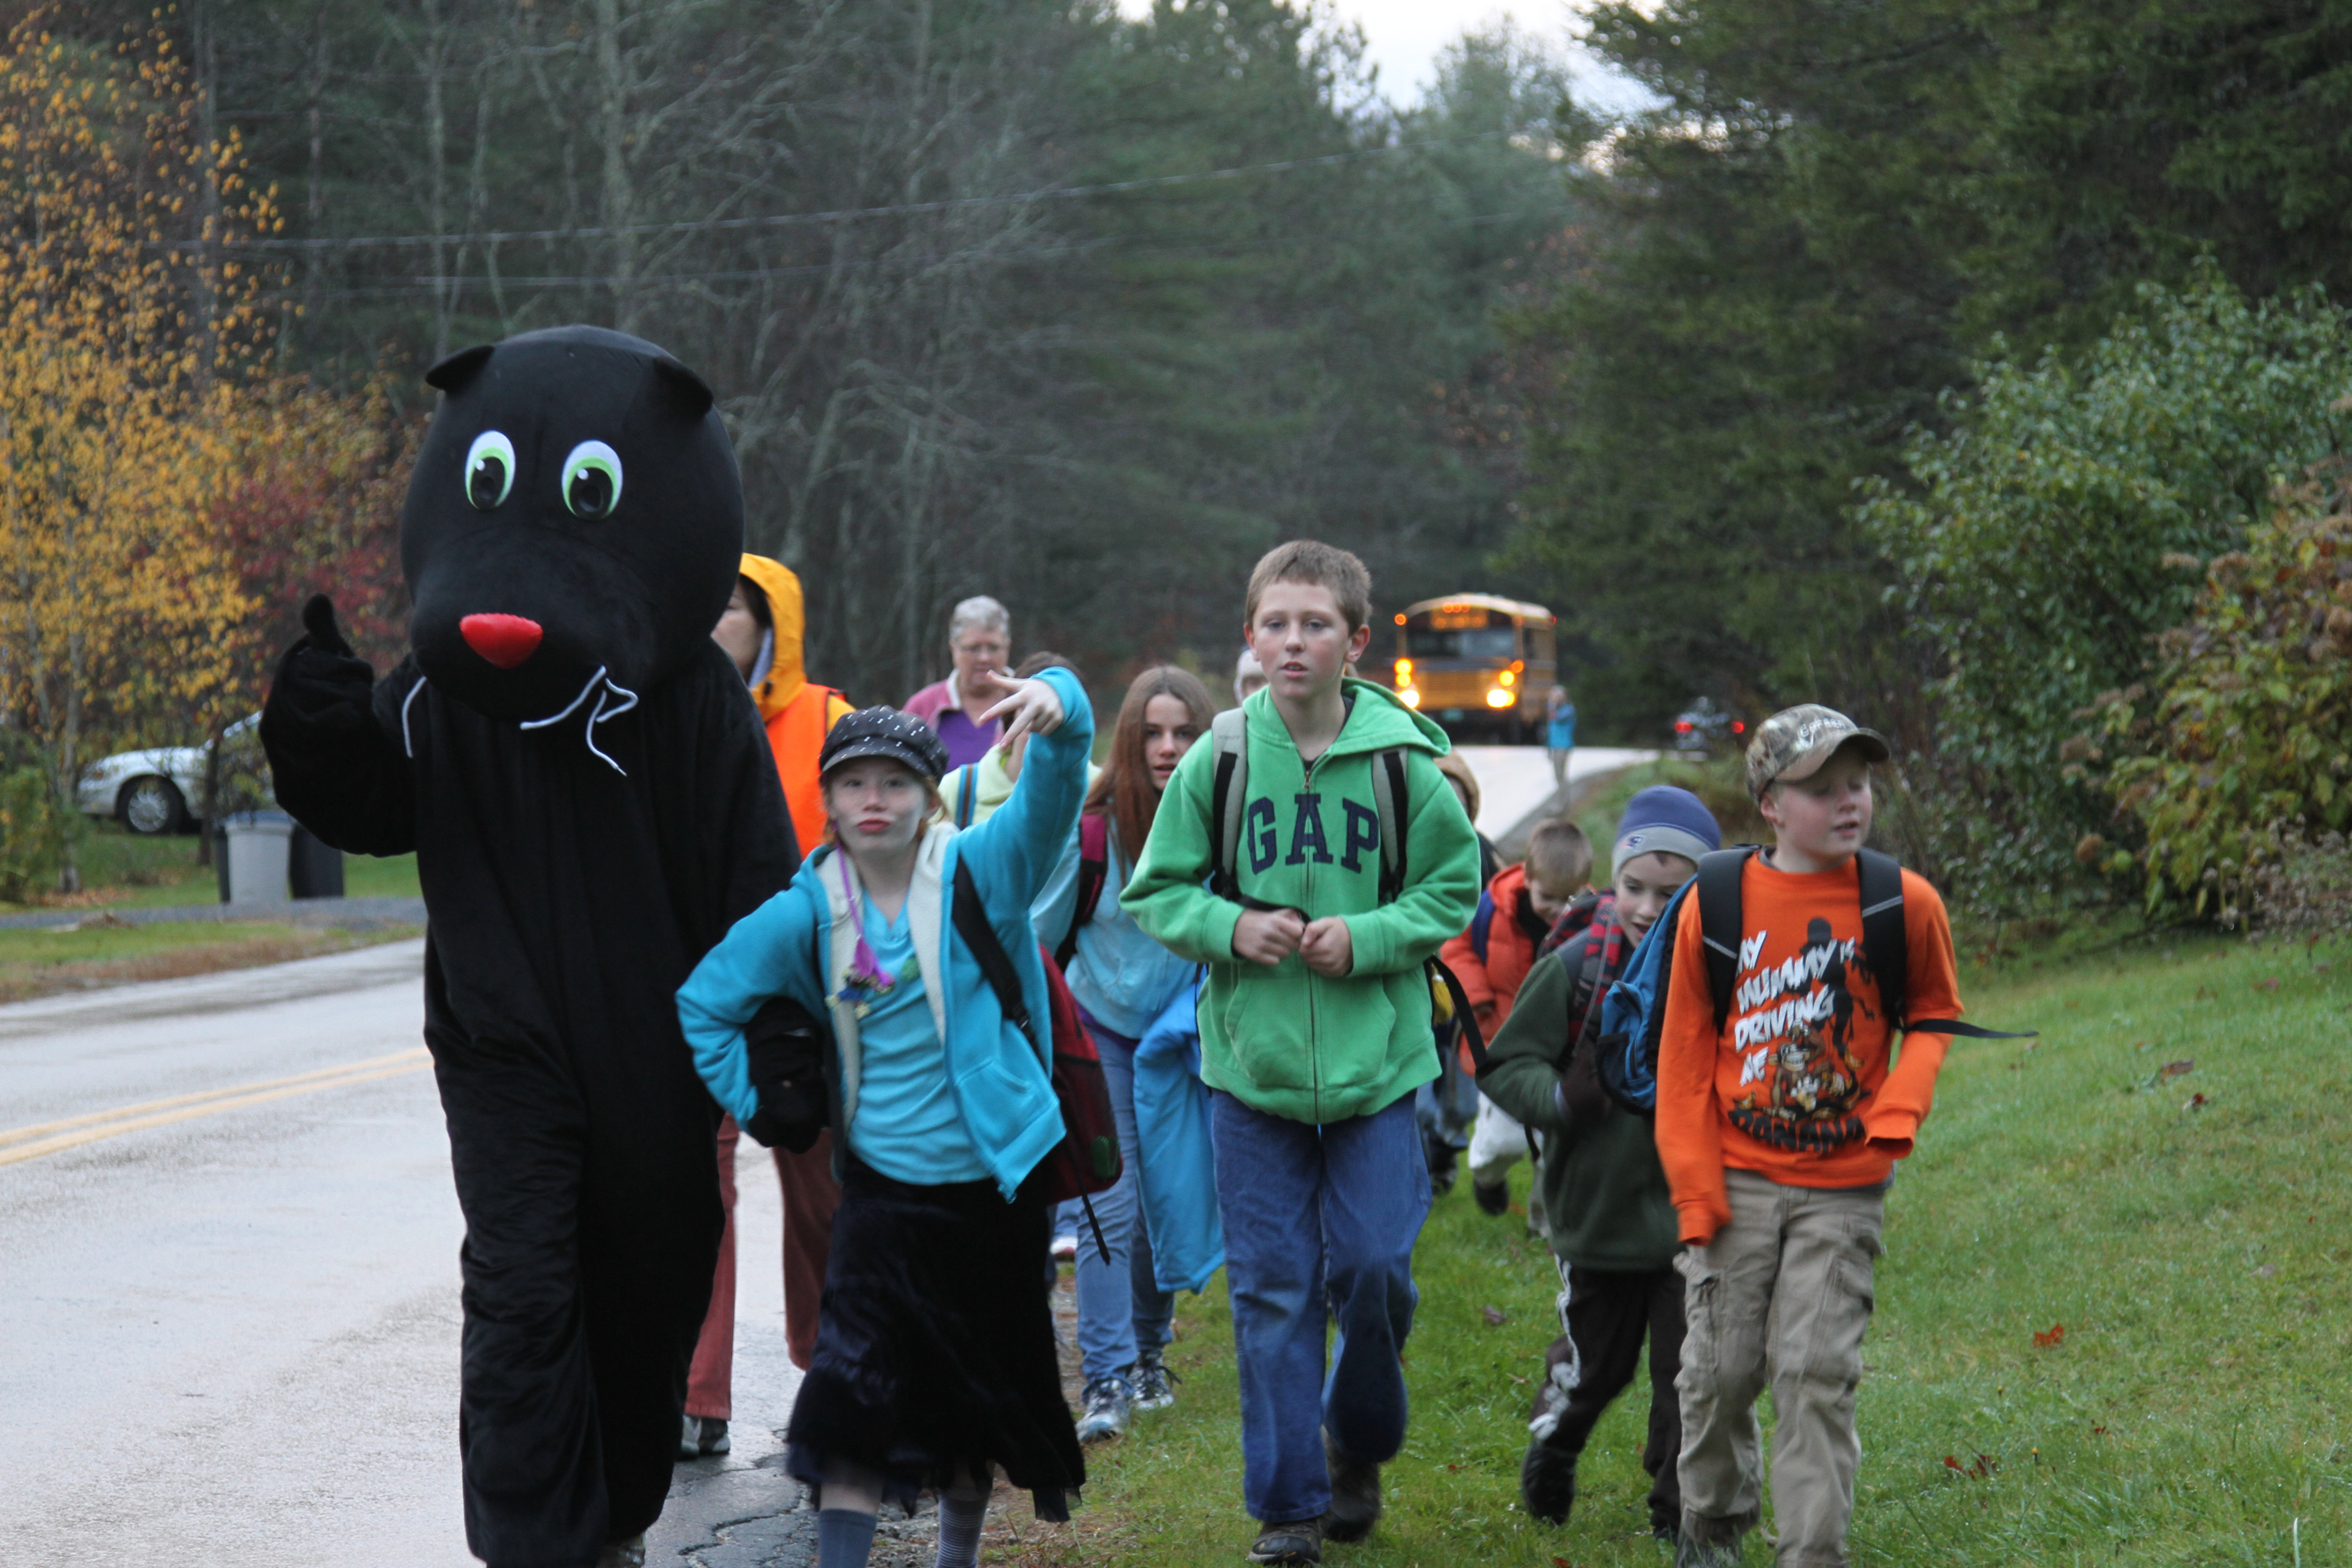 Children walking alongside a roadway with a school mascot